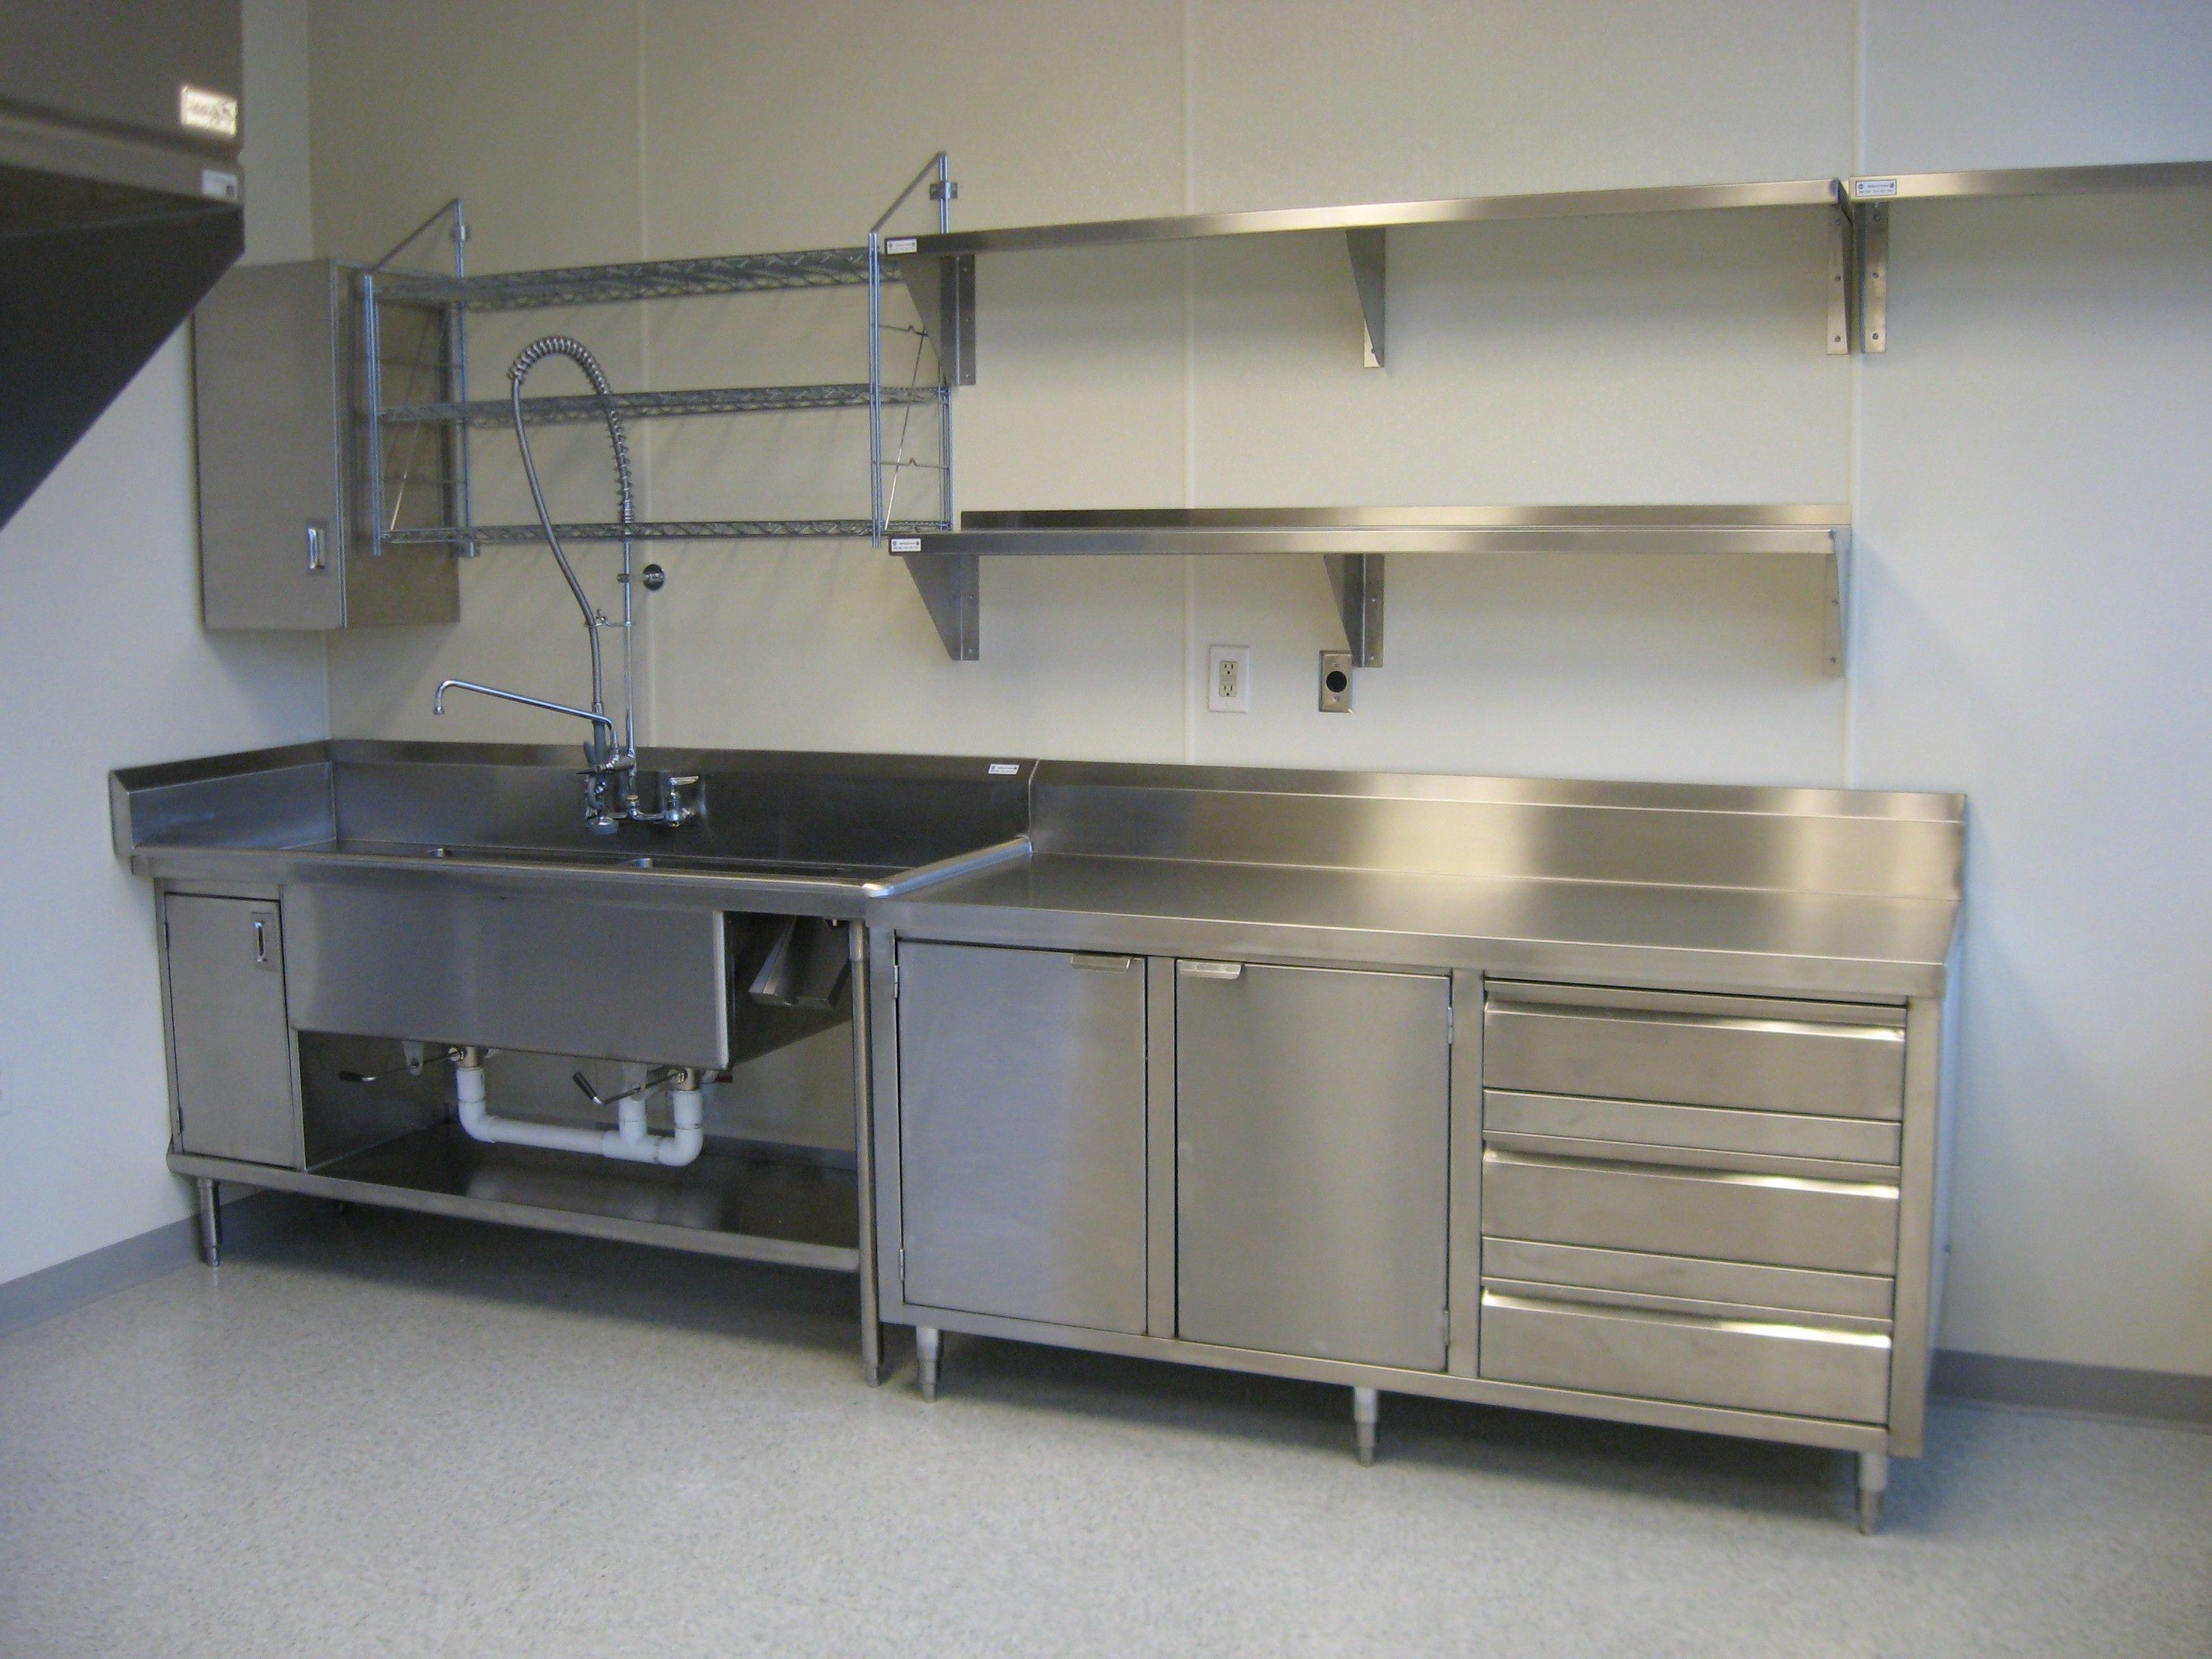 Restaurant Kitchen Units shelving stainless steel fitted units commercial kitchen large